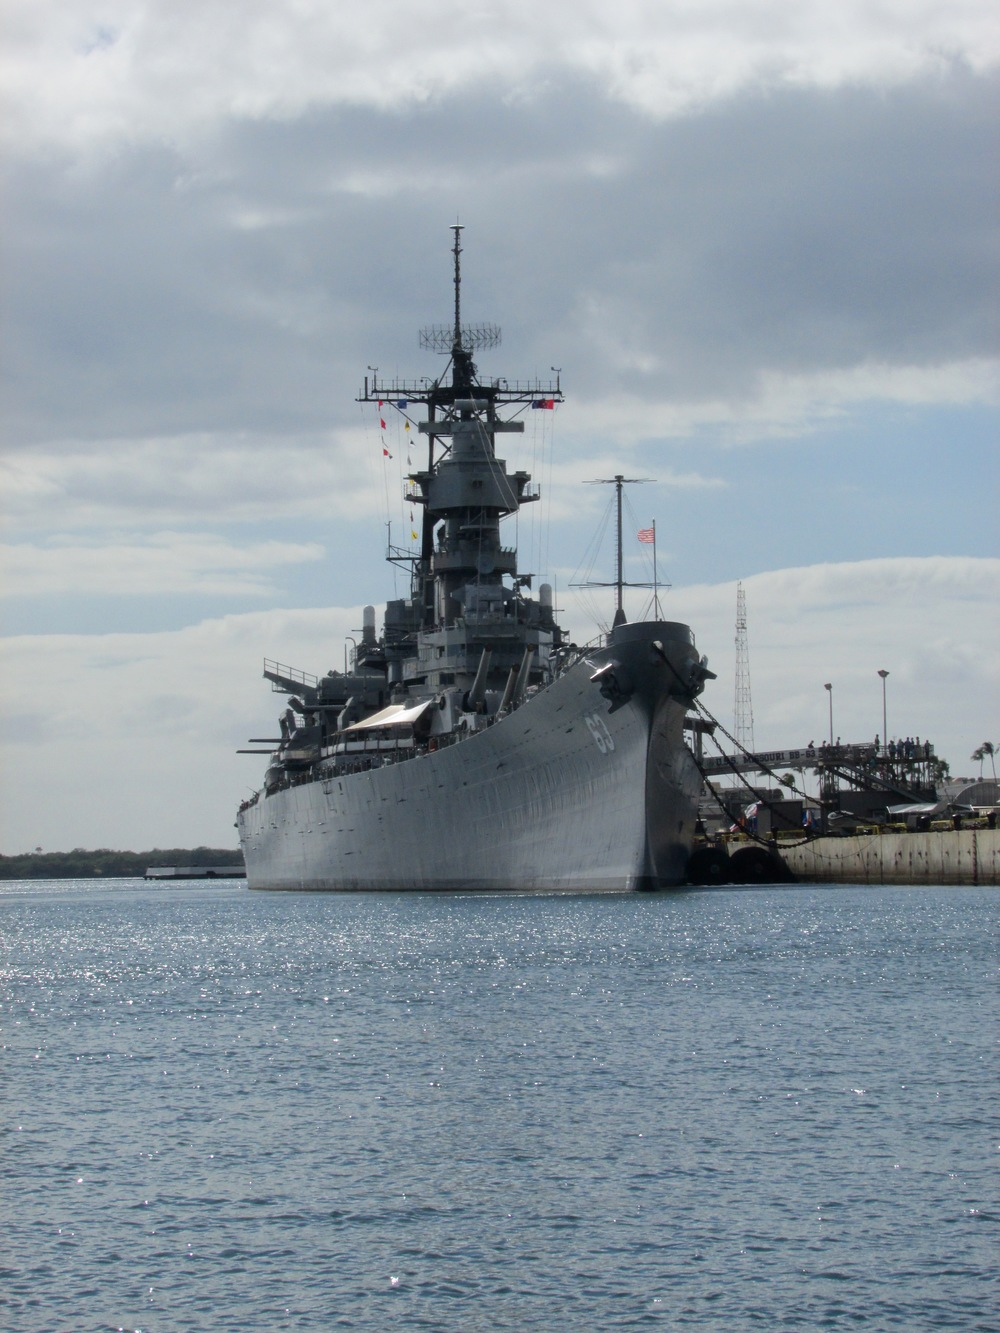 Visiting the USS Arizona in Pearl Harbor